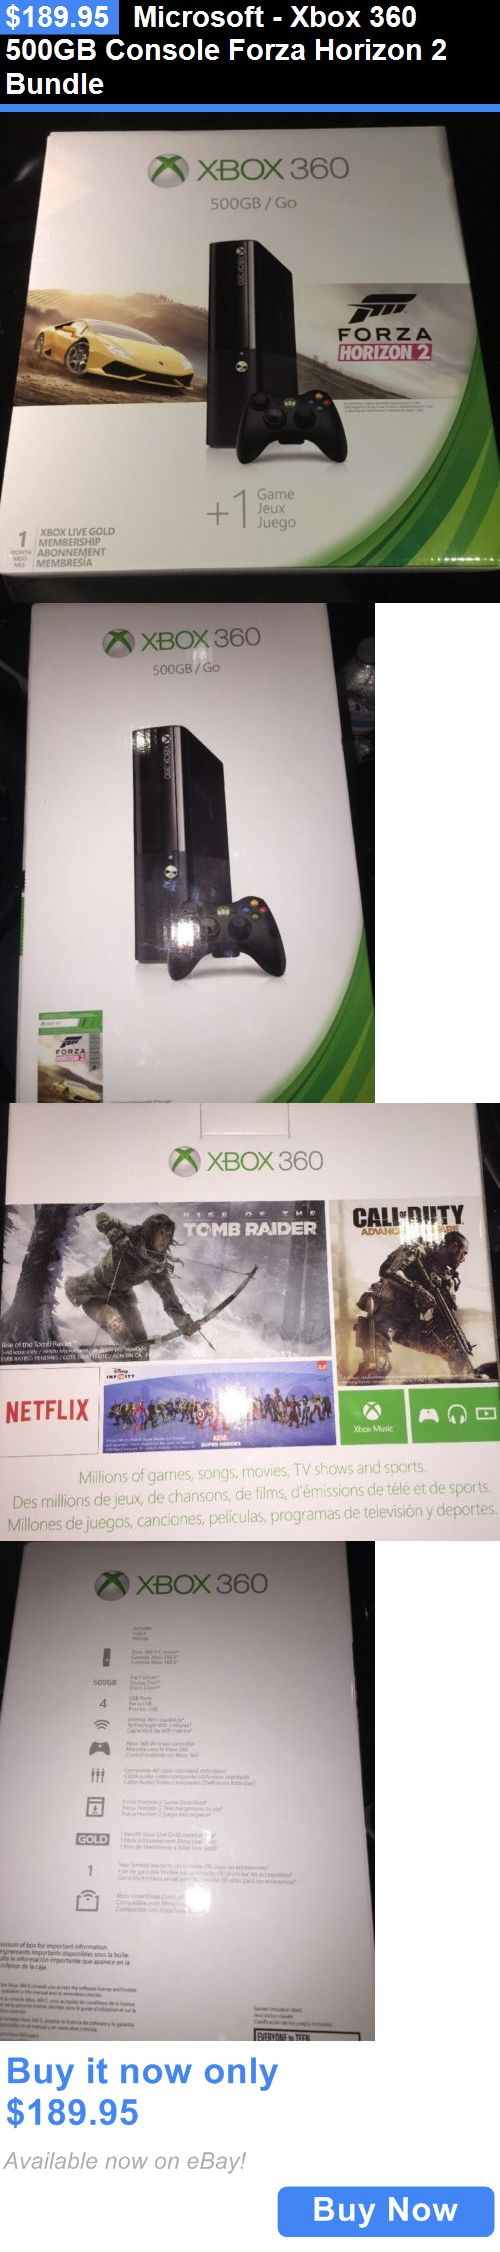 Video Gaming: Microsoft - Xbox 360 500Gb Console Forza Horizon 2 Bundle BUY IT NOW ONLY: $189.95